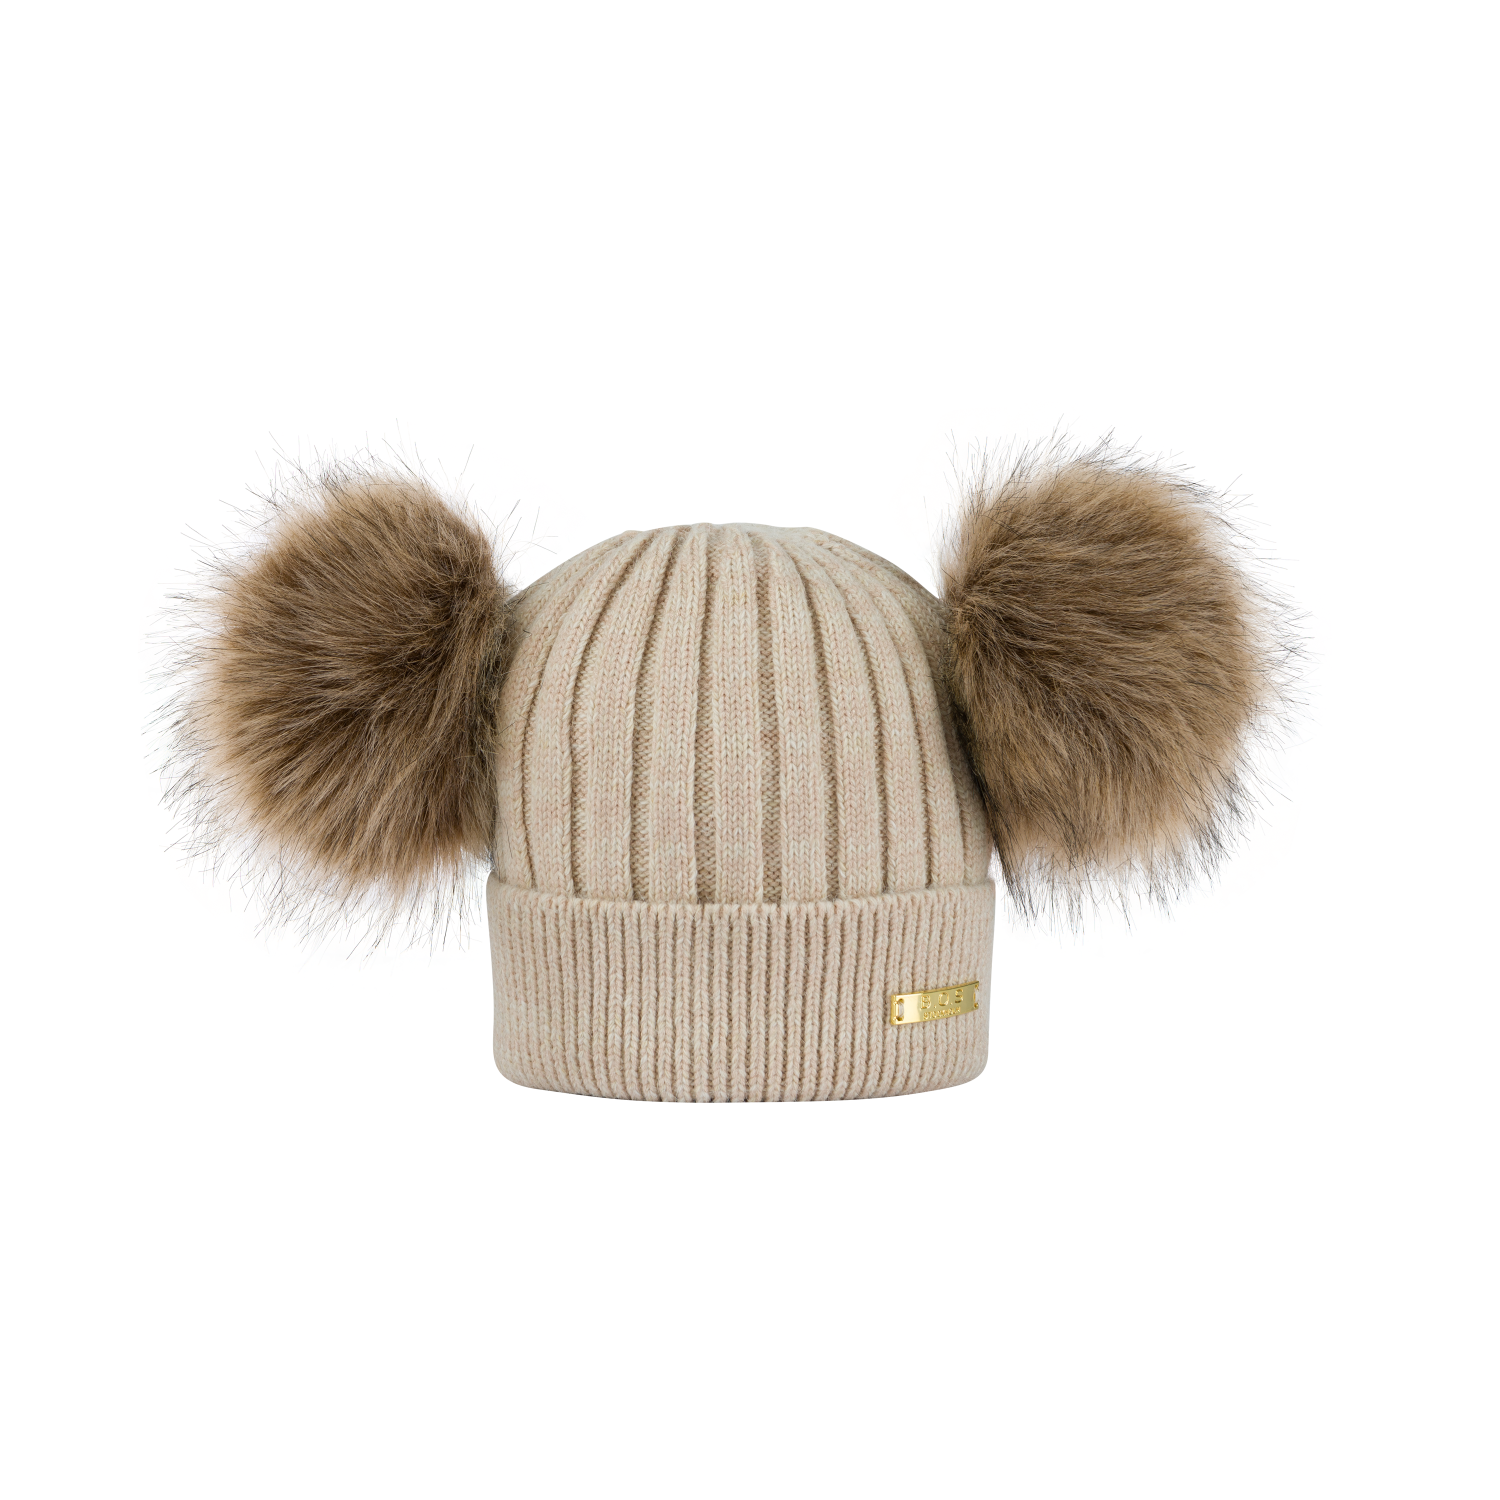 Knitted winter hat Beige